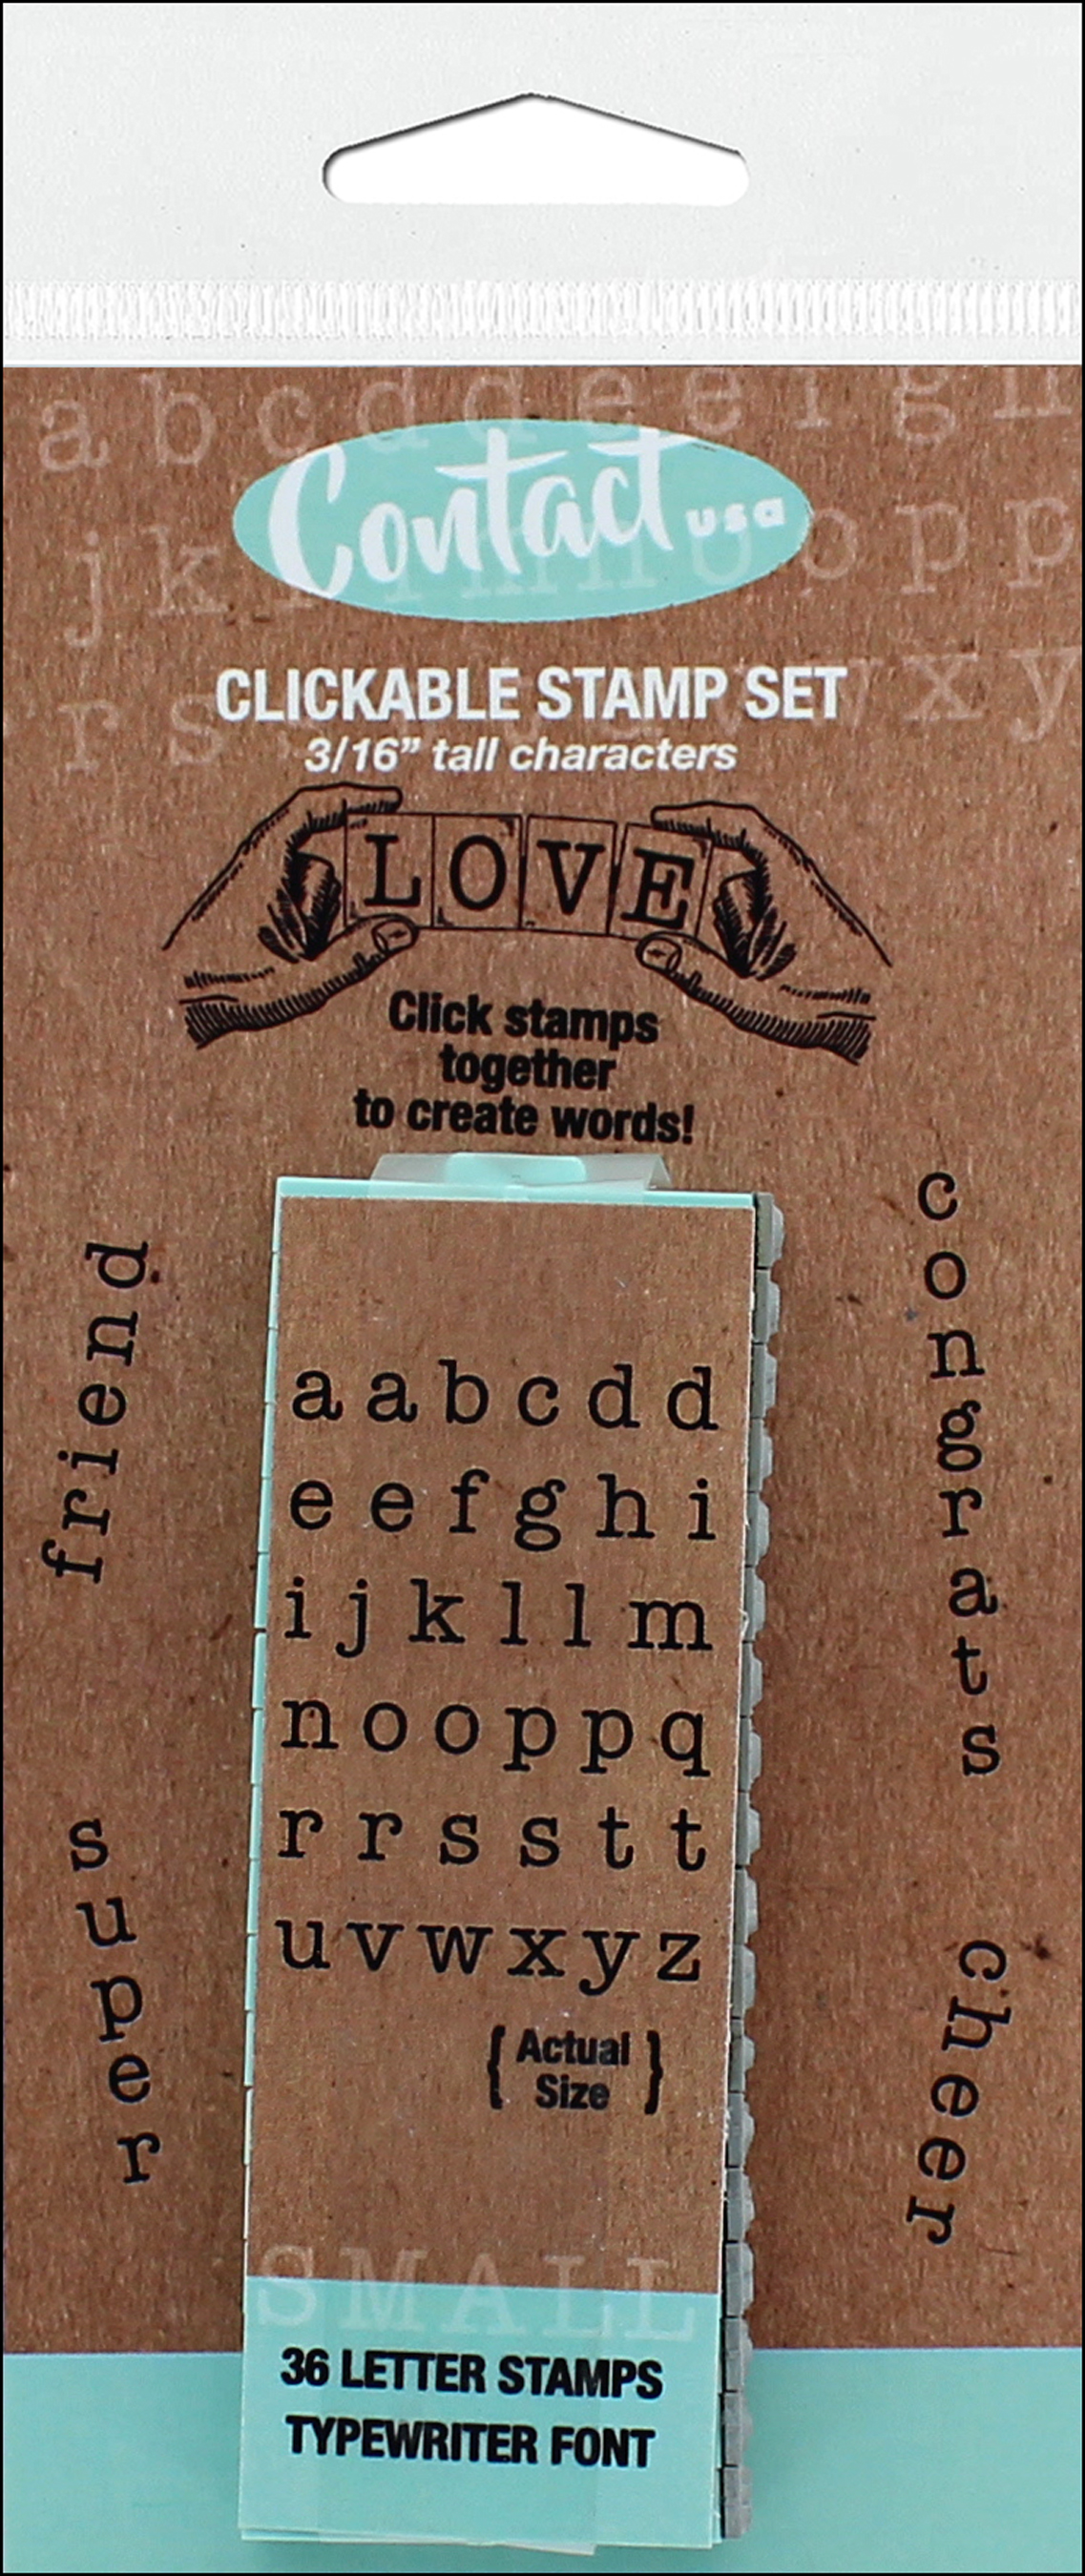 Contact USA Clickable Stamp Set Small Lower Case Typewriter Font